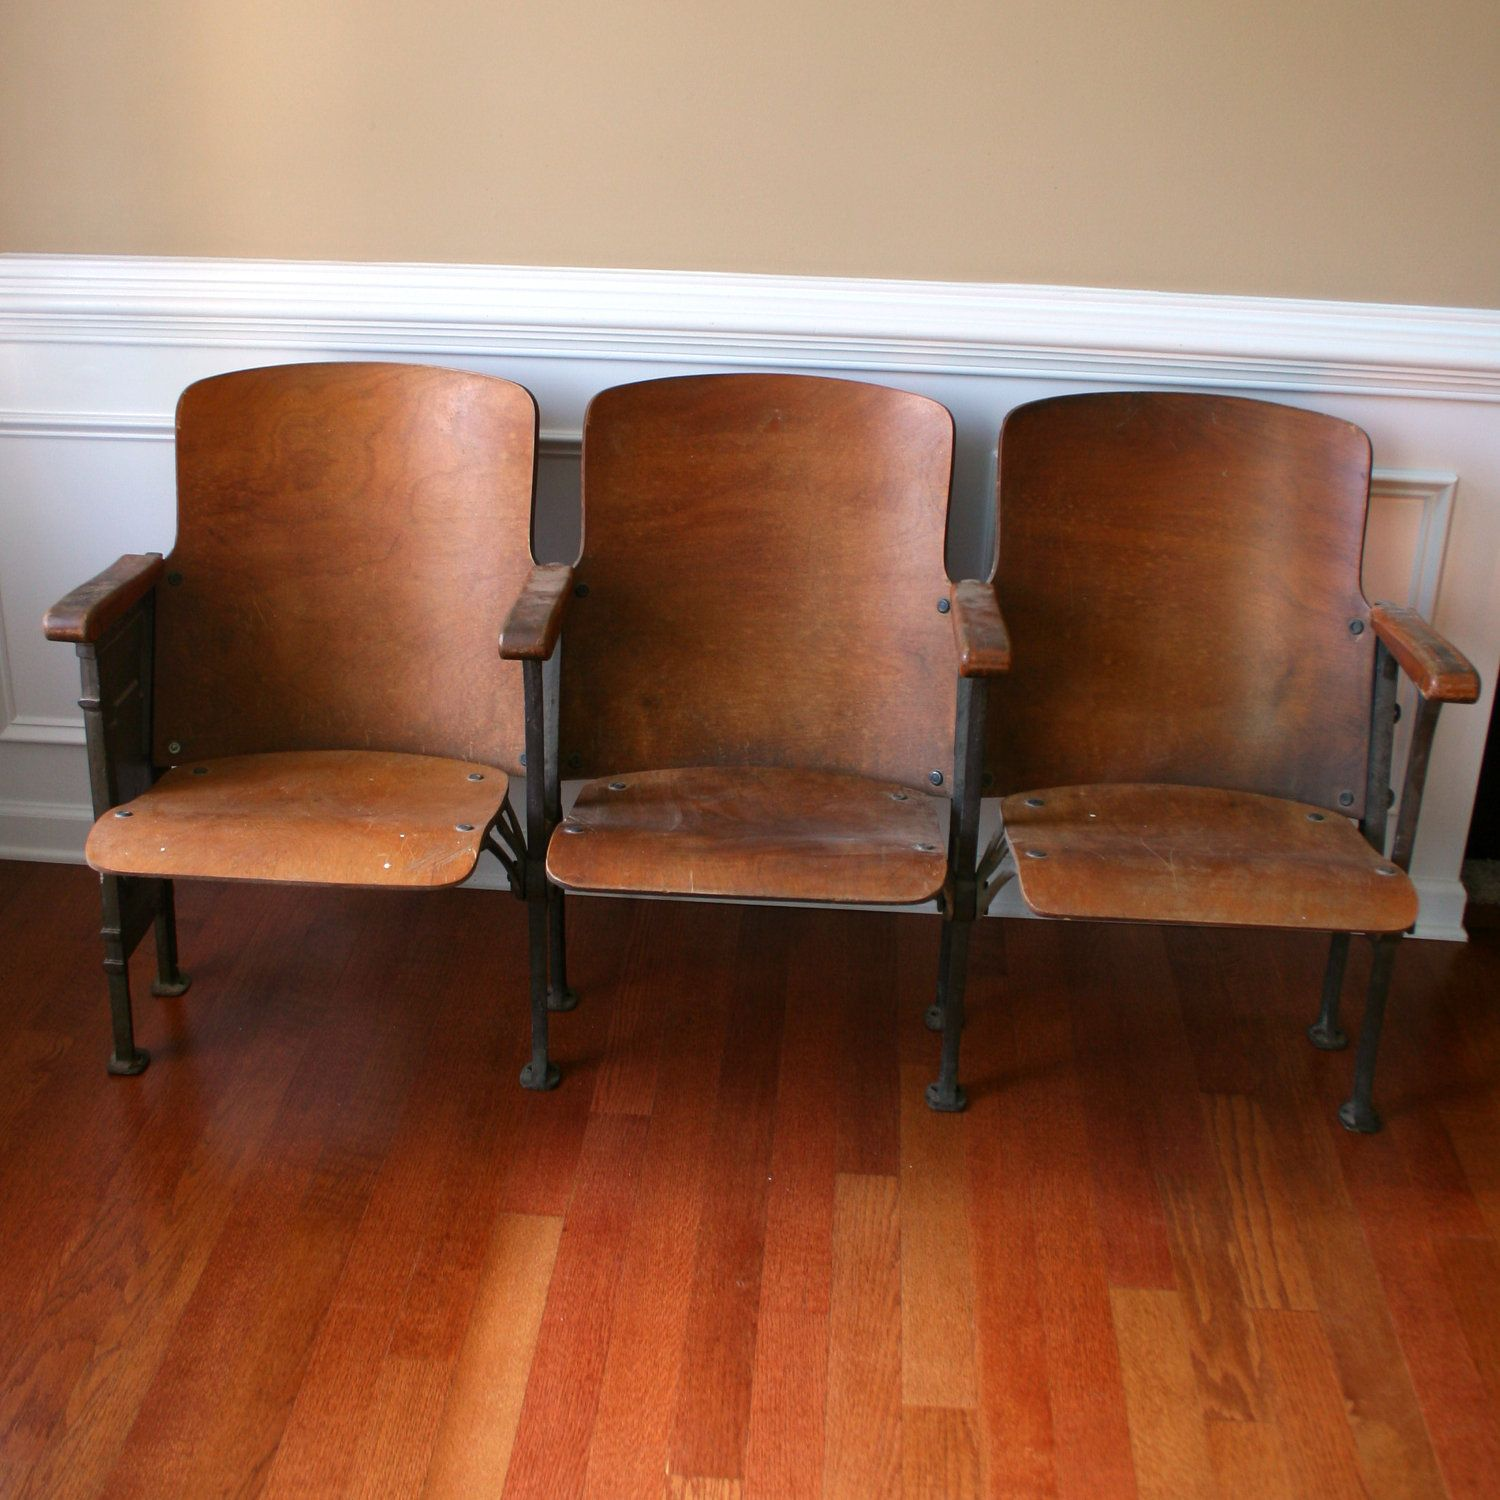 Chairs. Movie Theater Chairs. Man Furniture. Wood. Folding